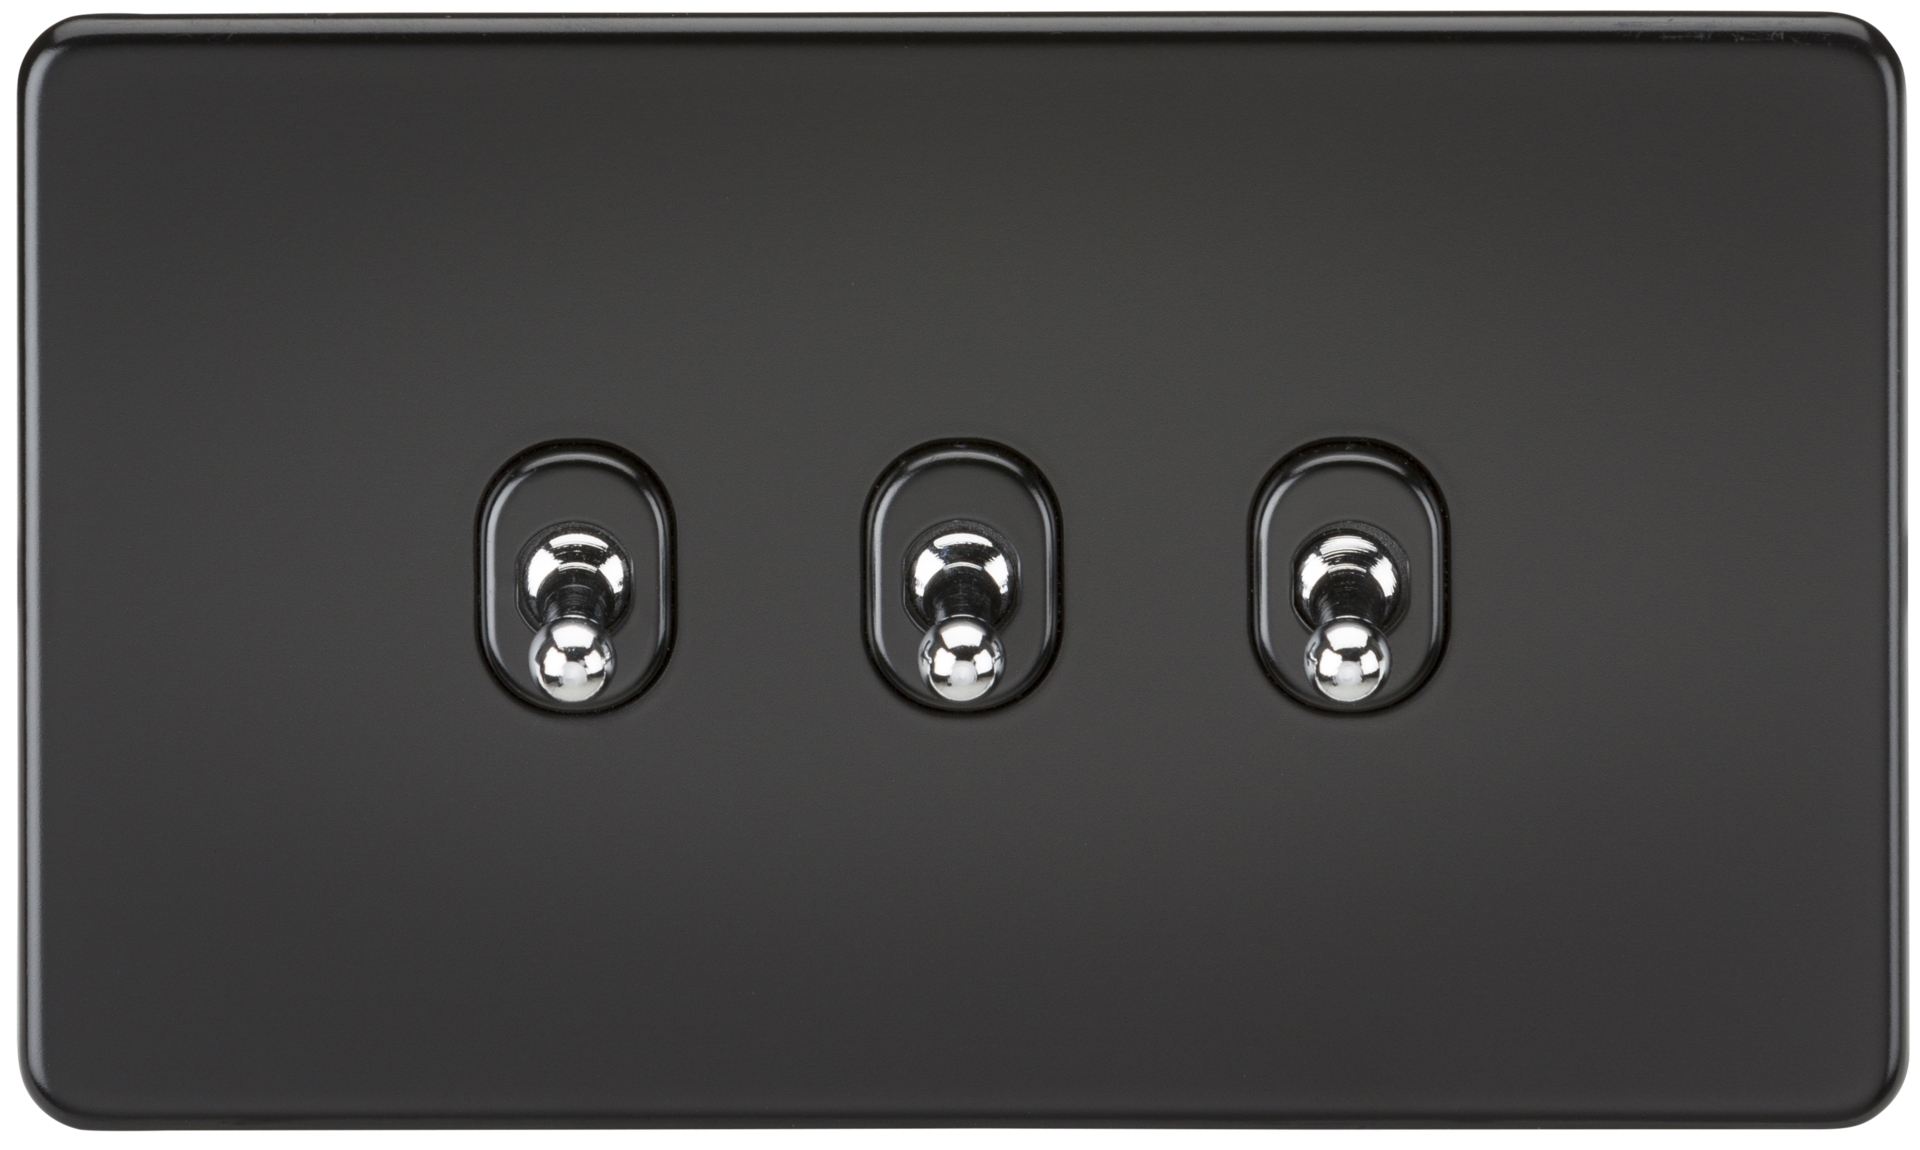 SCREWLESS 10A 3G 2 WAY TOGGLE SWITCH - MATT BLACK